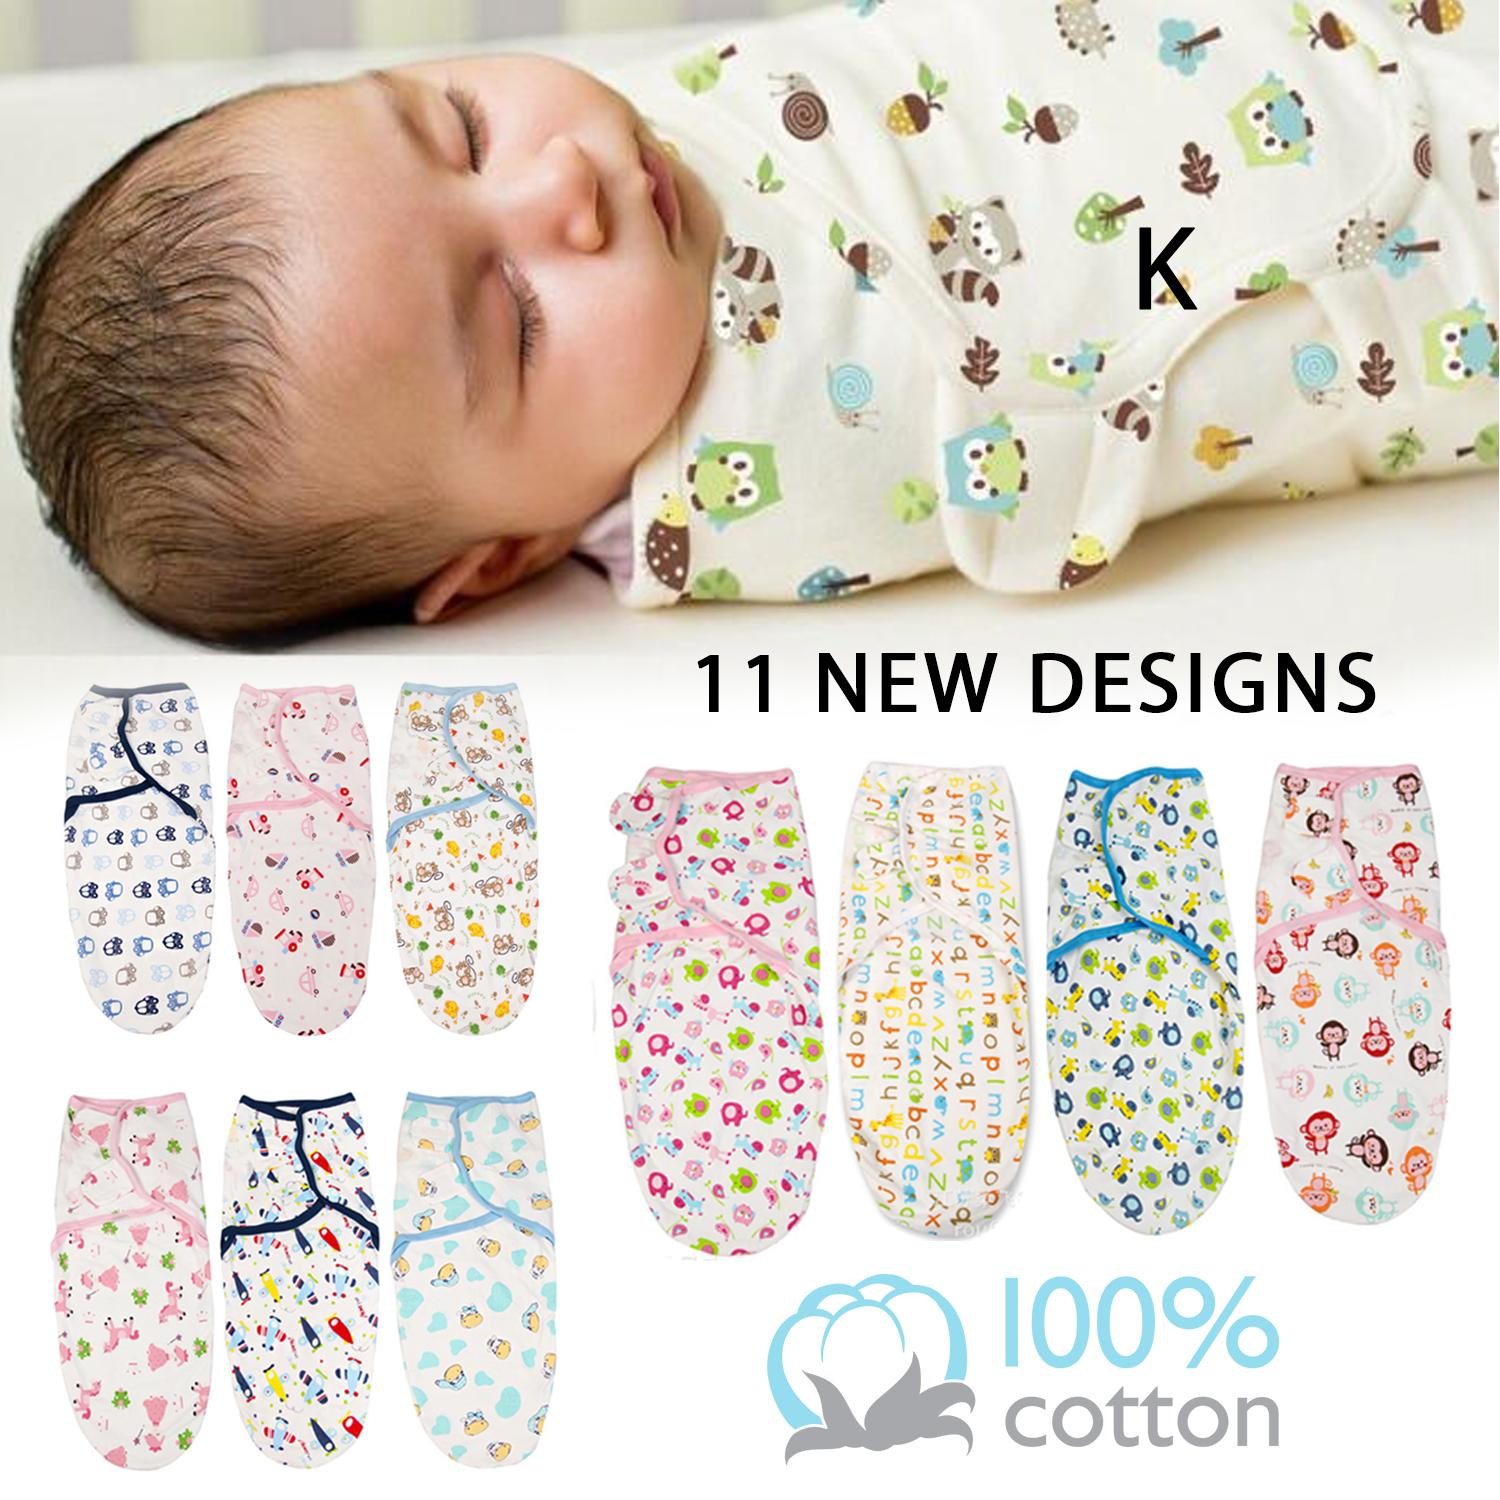 16dbec5bd Nursery Blankets for sale - Baby Blankets online brands